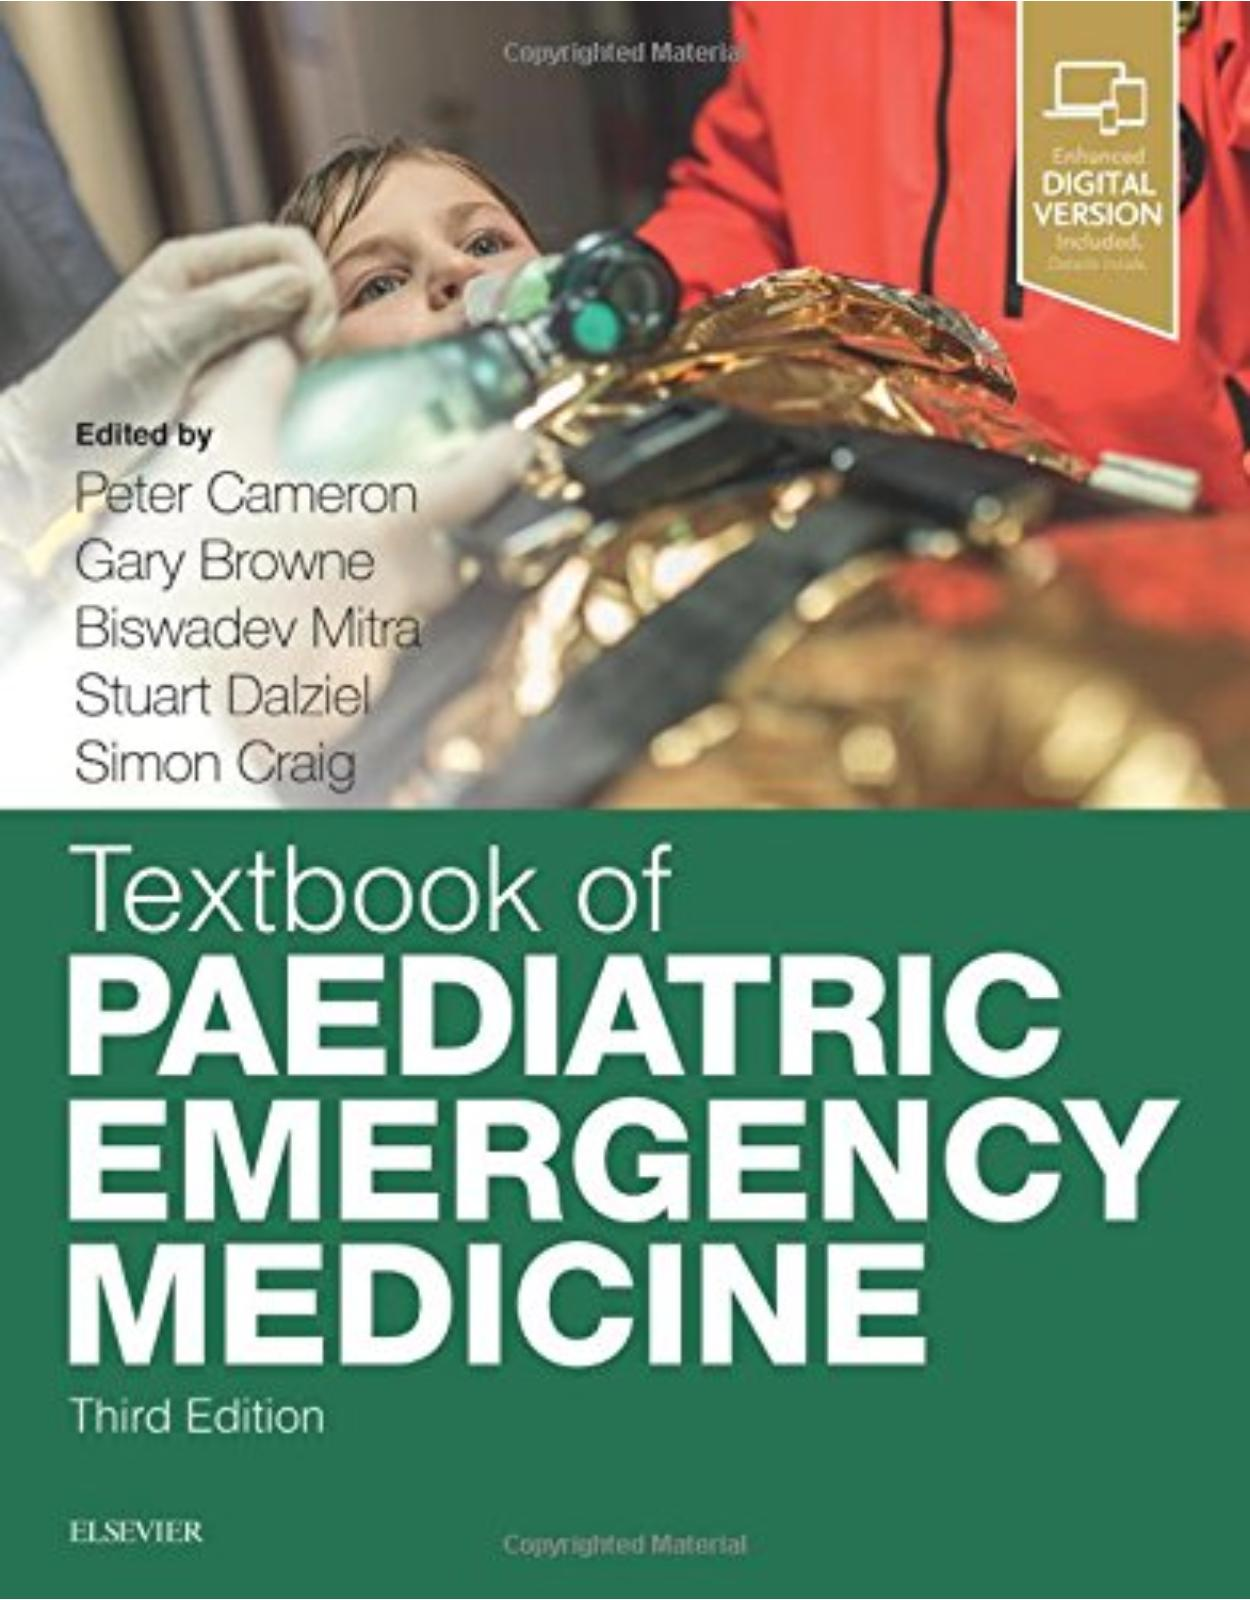 Textbook of Paediatric Emergency Medicine, 3e